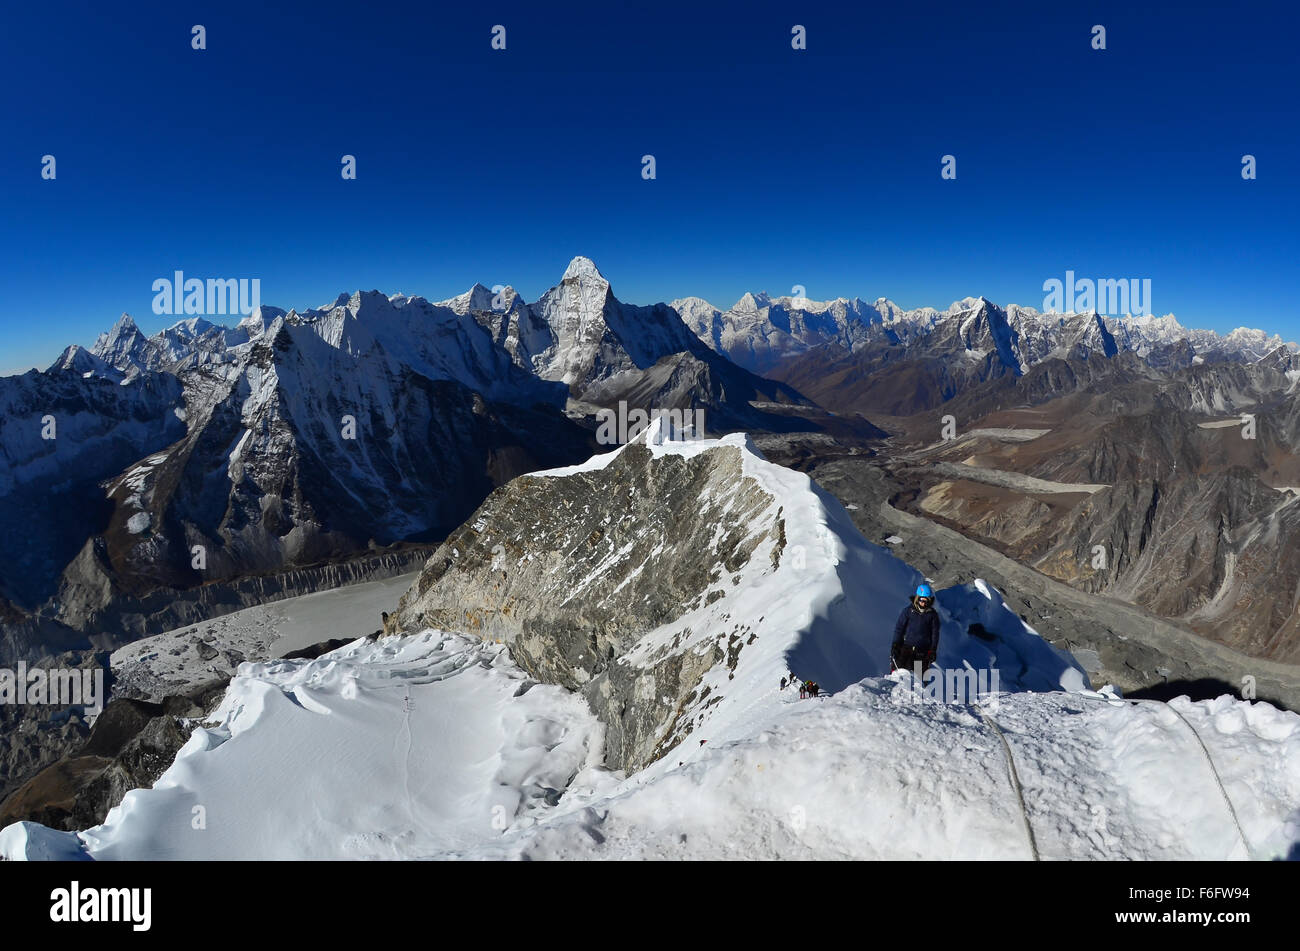 View from the summit of Island Peak (Imja Tse) in Nepal's Khumbu region. - Stock Image